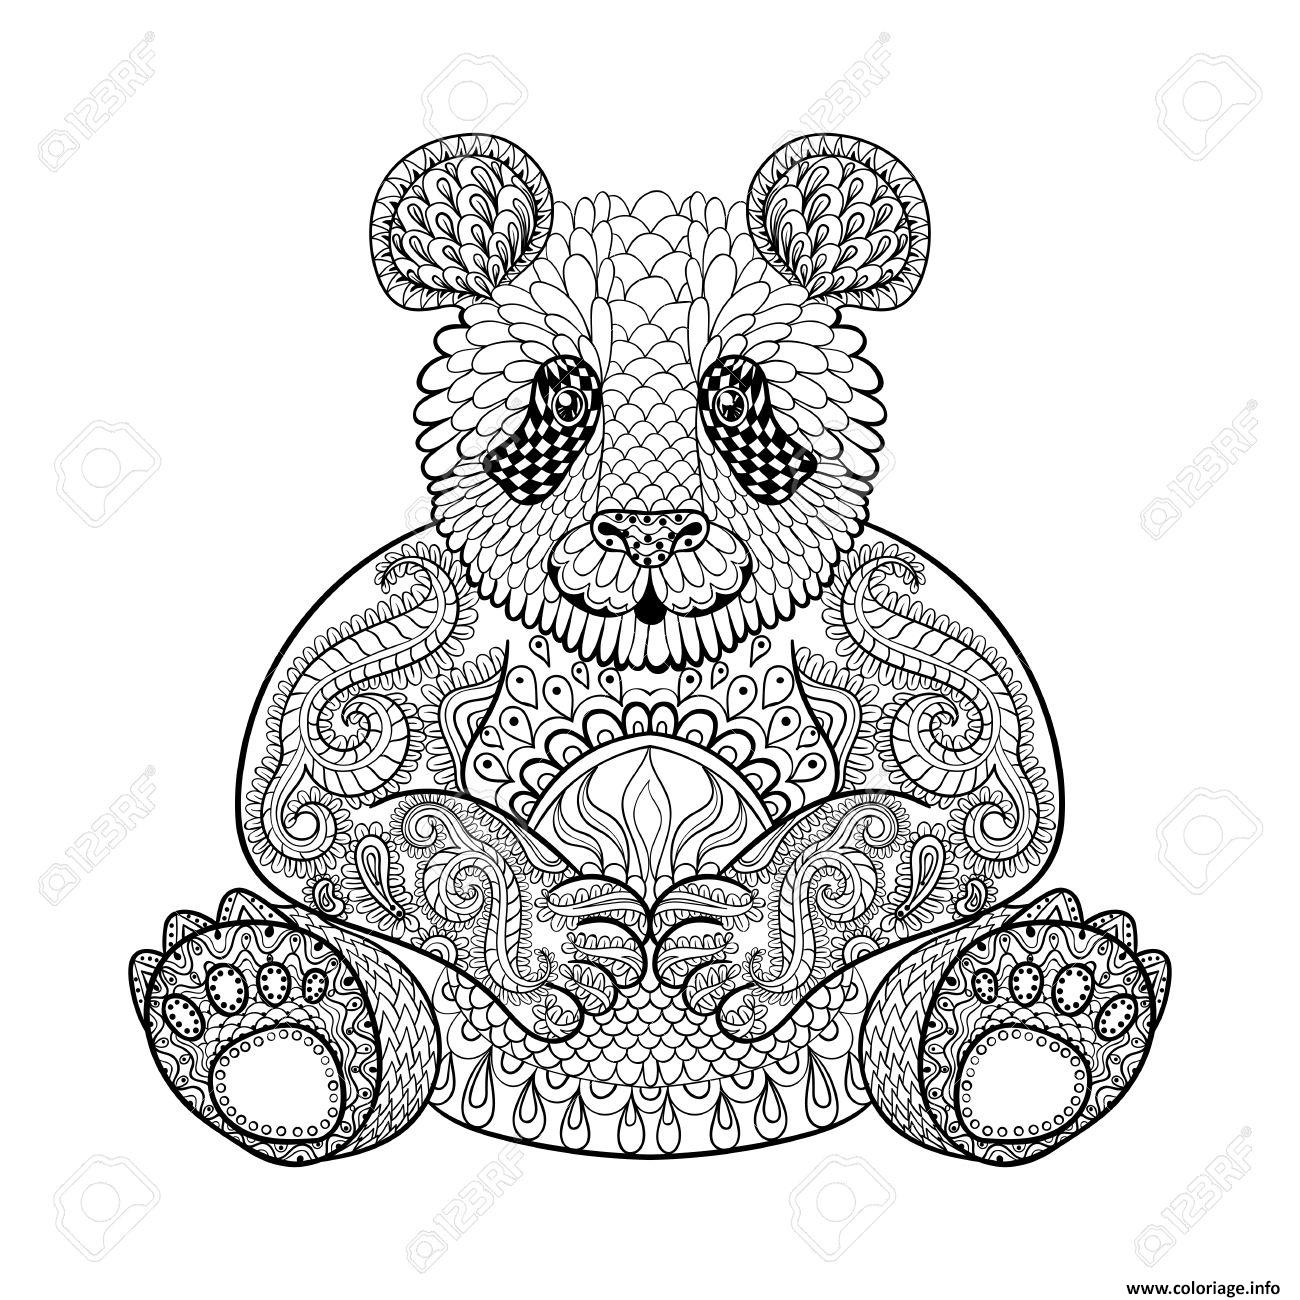 Coloriage panda adulte animaux zentangle difficile dessin - Panda pour coloriage ...